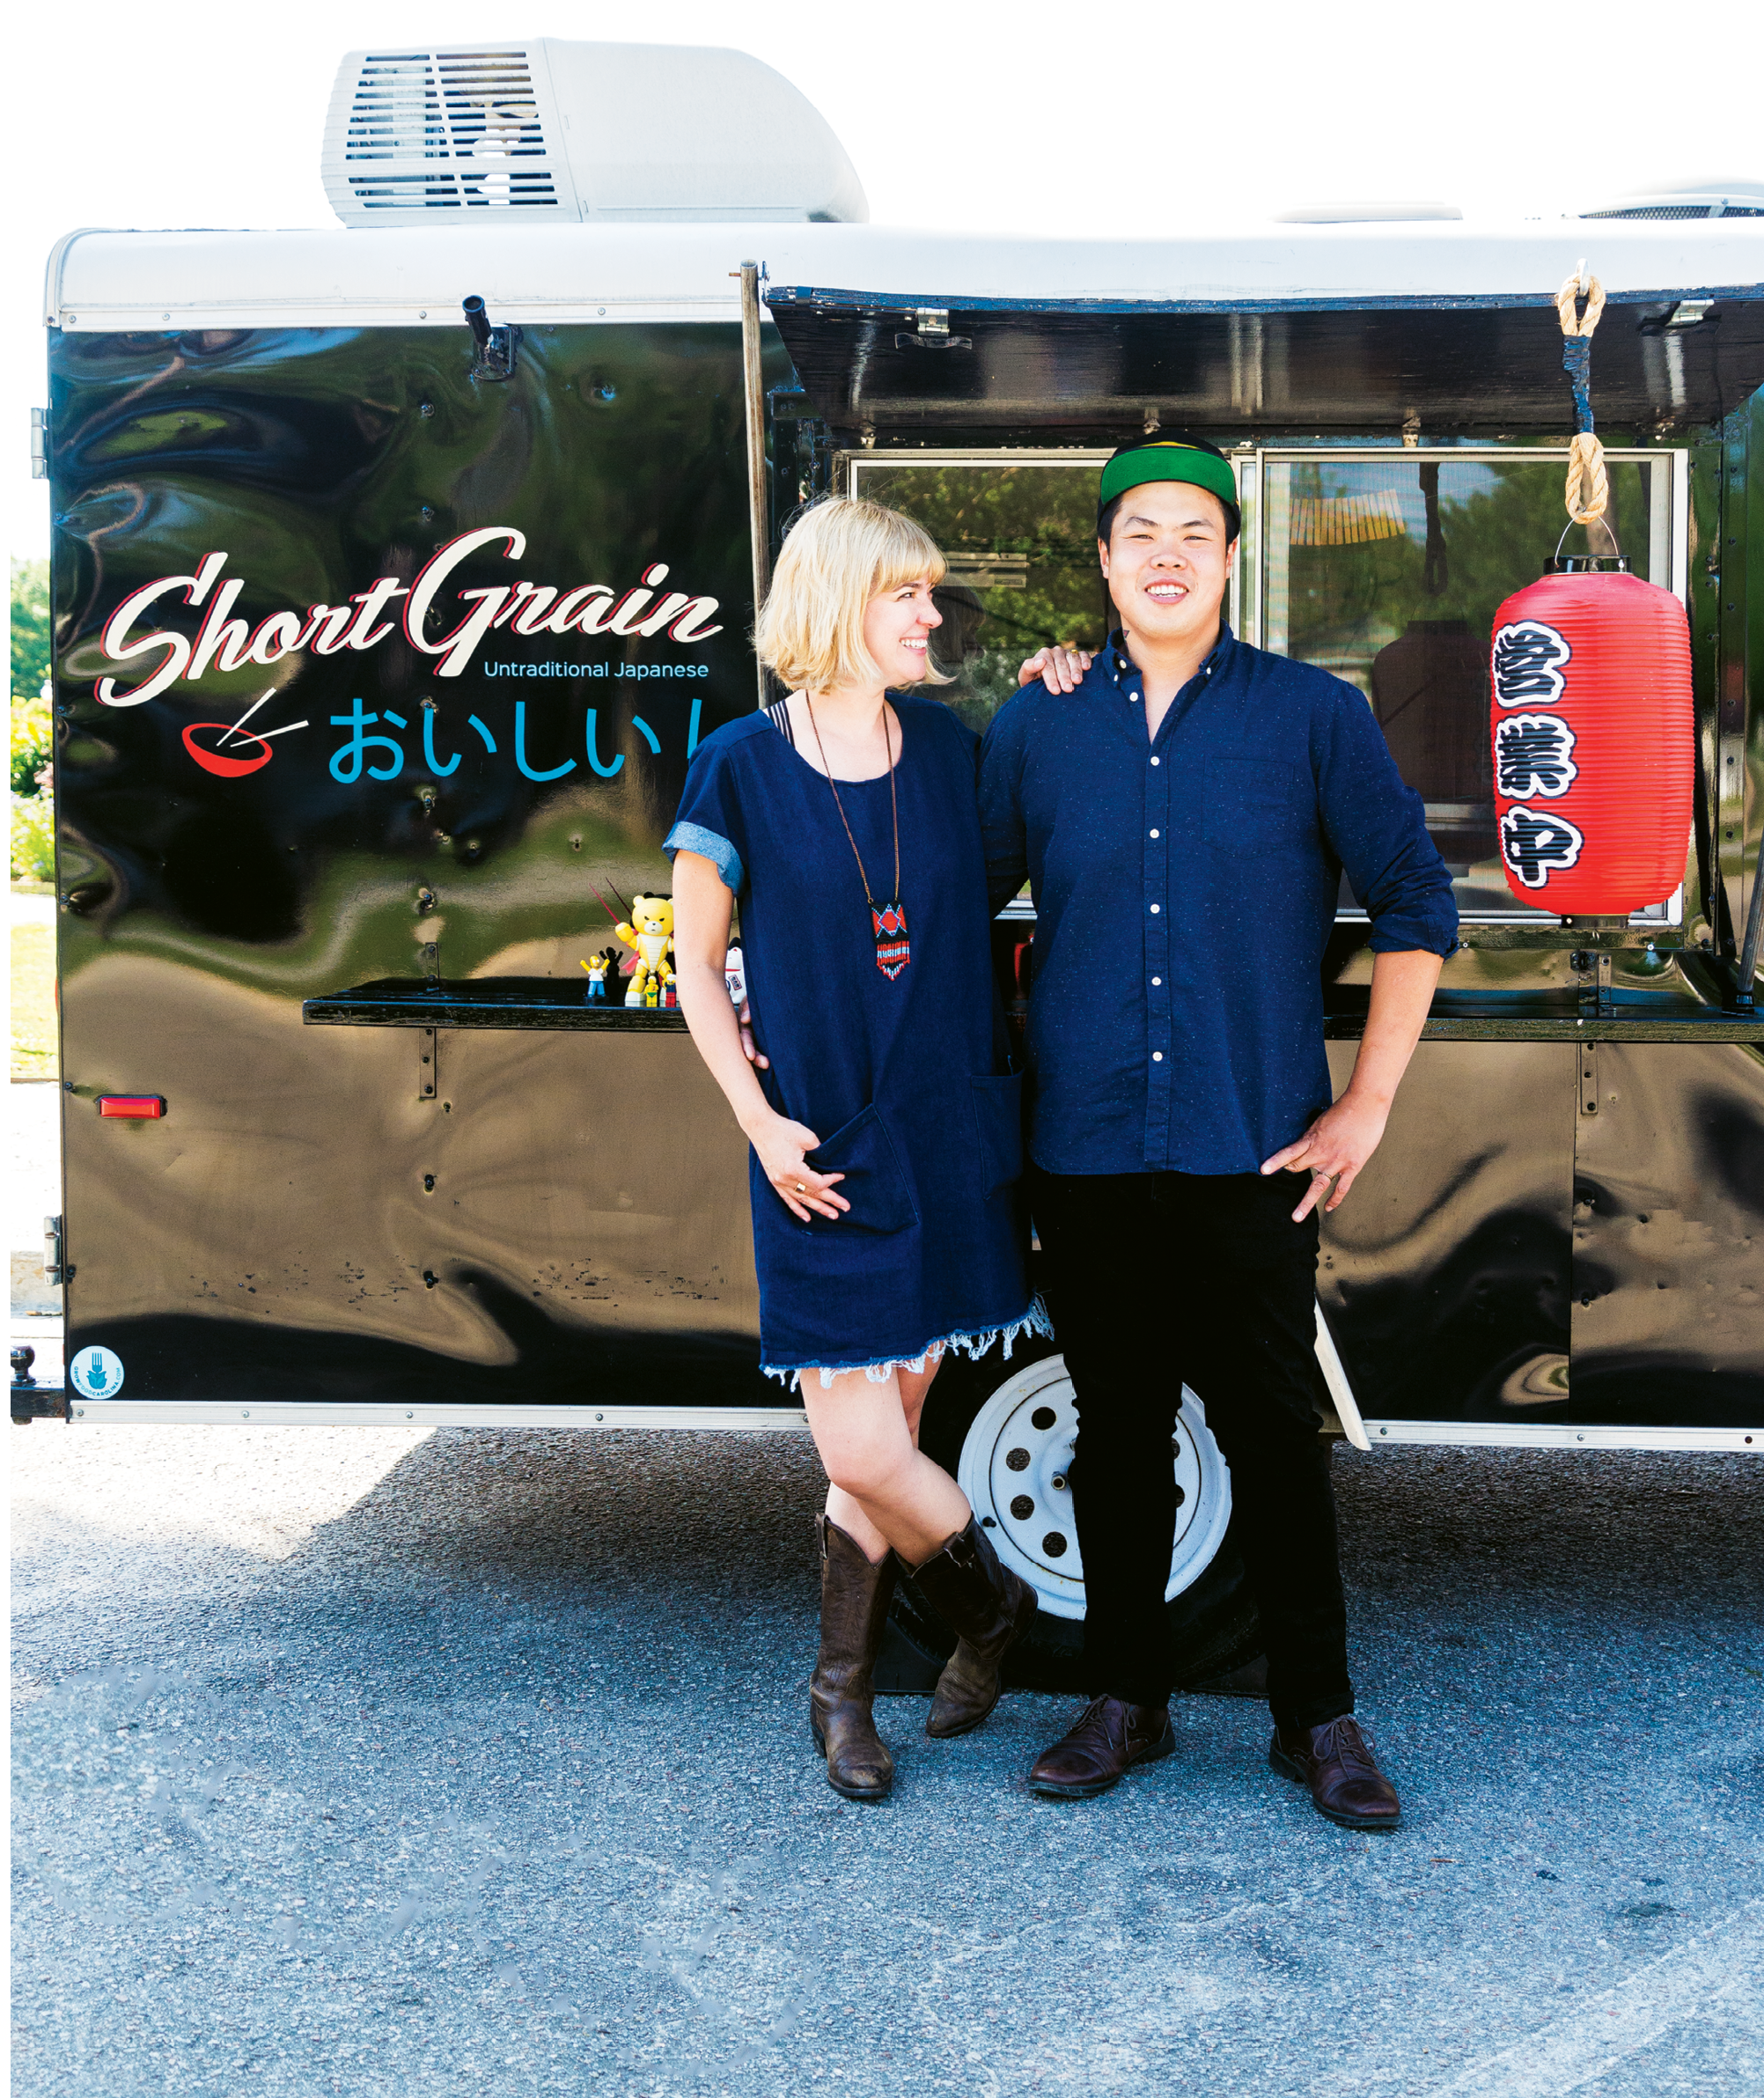 FOOD TRUCK: Short Grain; Shuai Wang partners up with his wife, Corrie, on their mobile eatery.